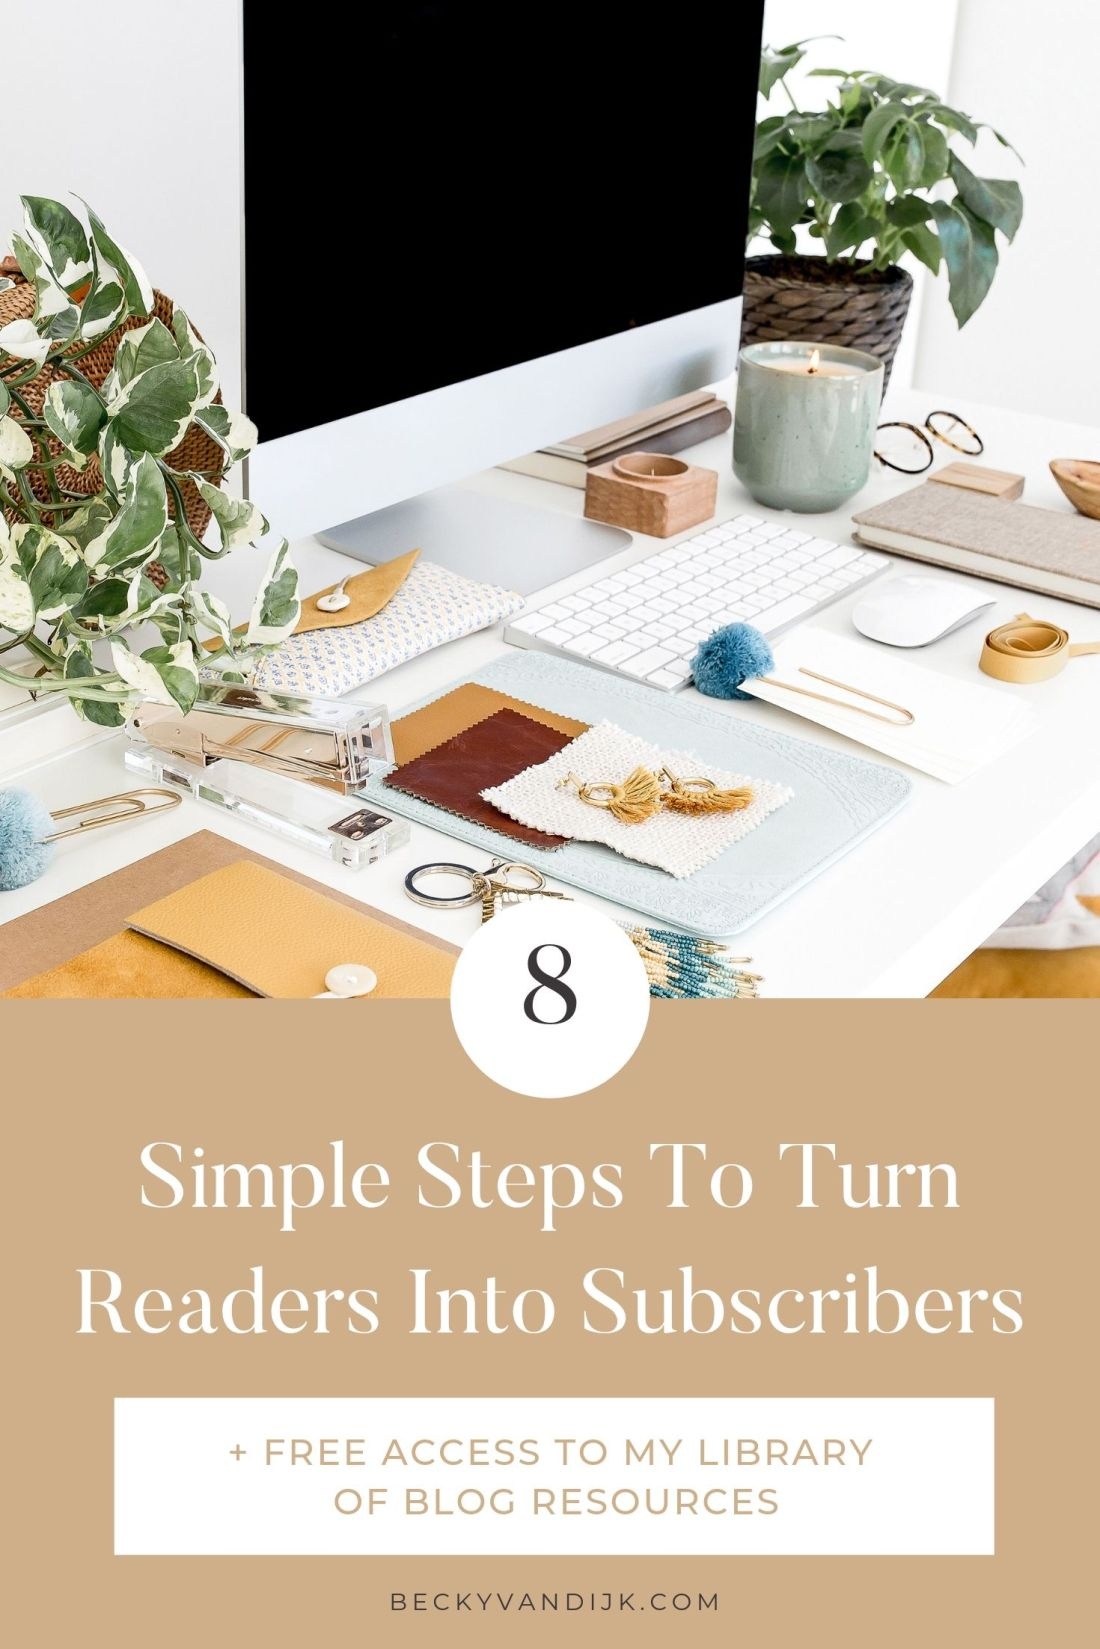 8 simple steps to grow your email list (5)